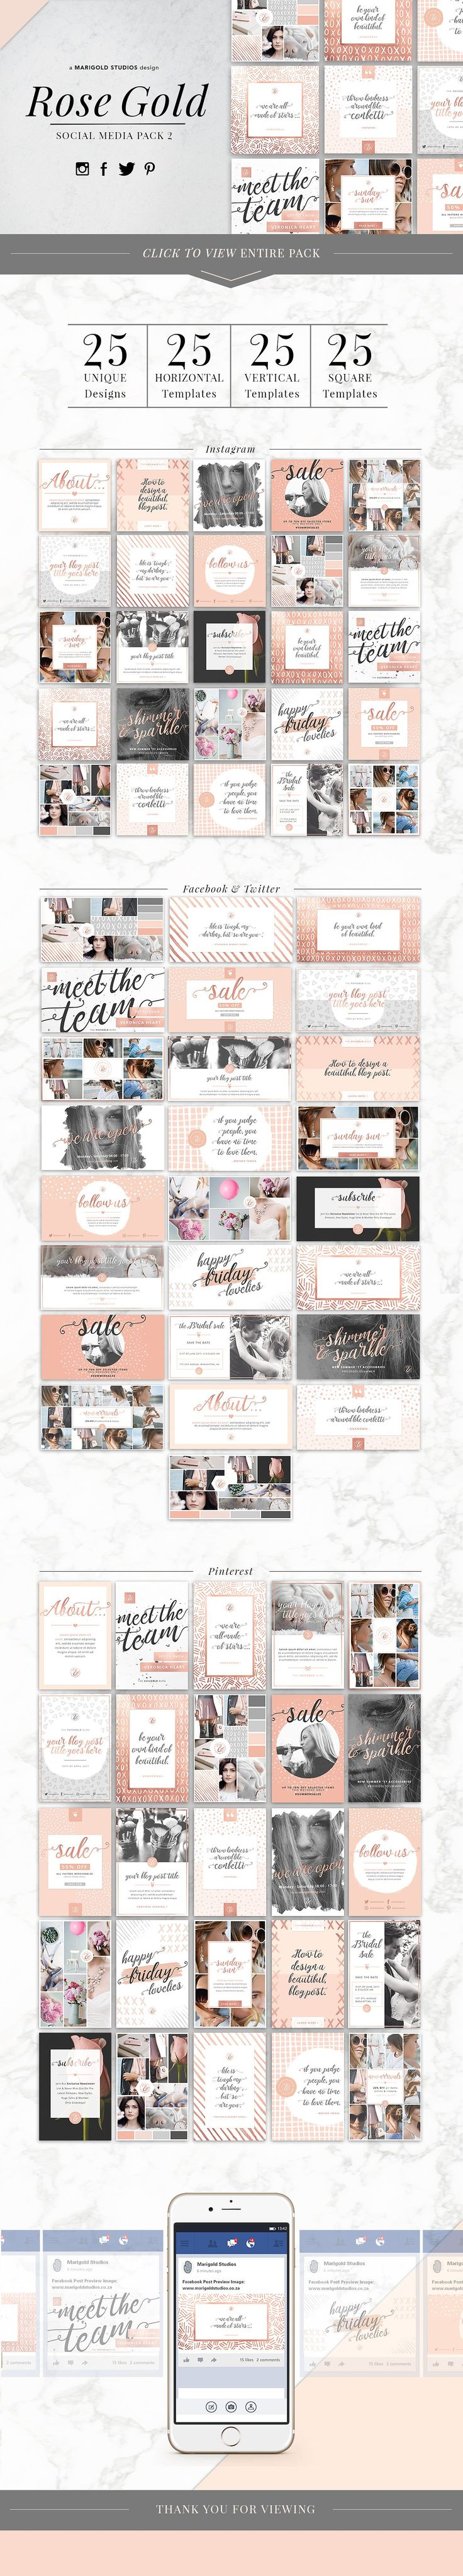 ROSE GOLD | Social Media Pack 2 by Marigold Studios on @creativemarket